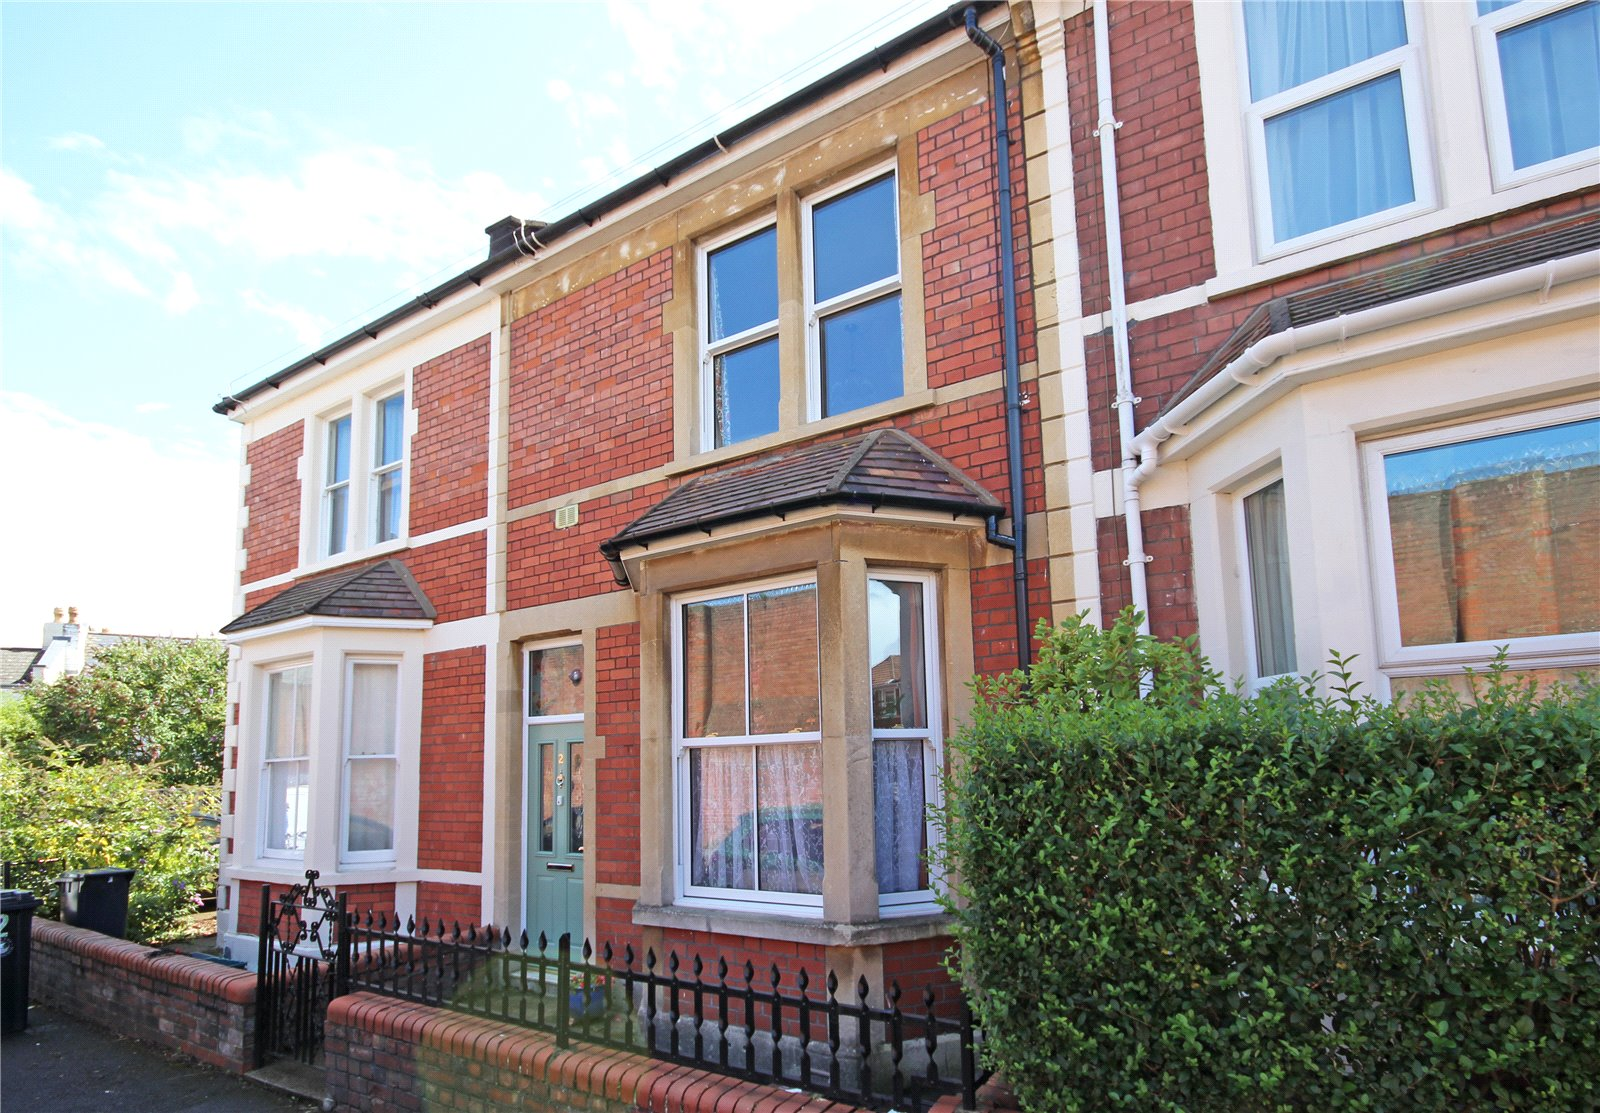 2 Bedrooms Terraced House for sale in Cambridge Road Bishopston Bristol BS7